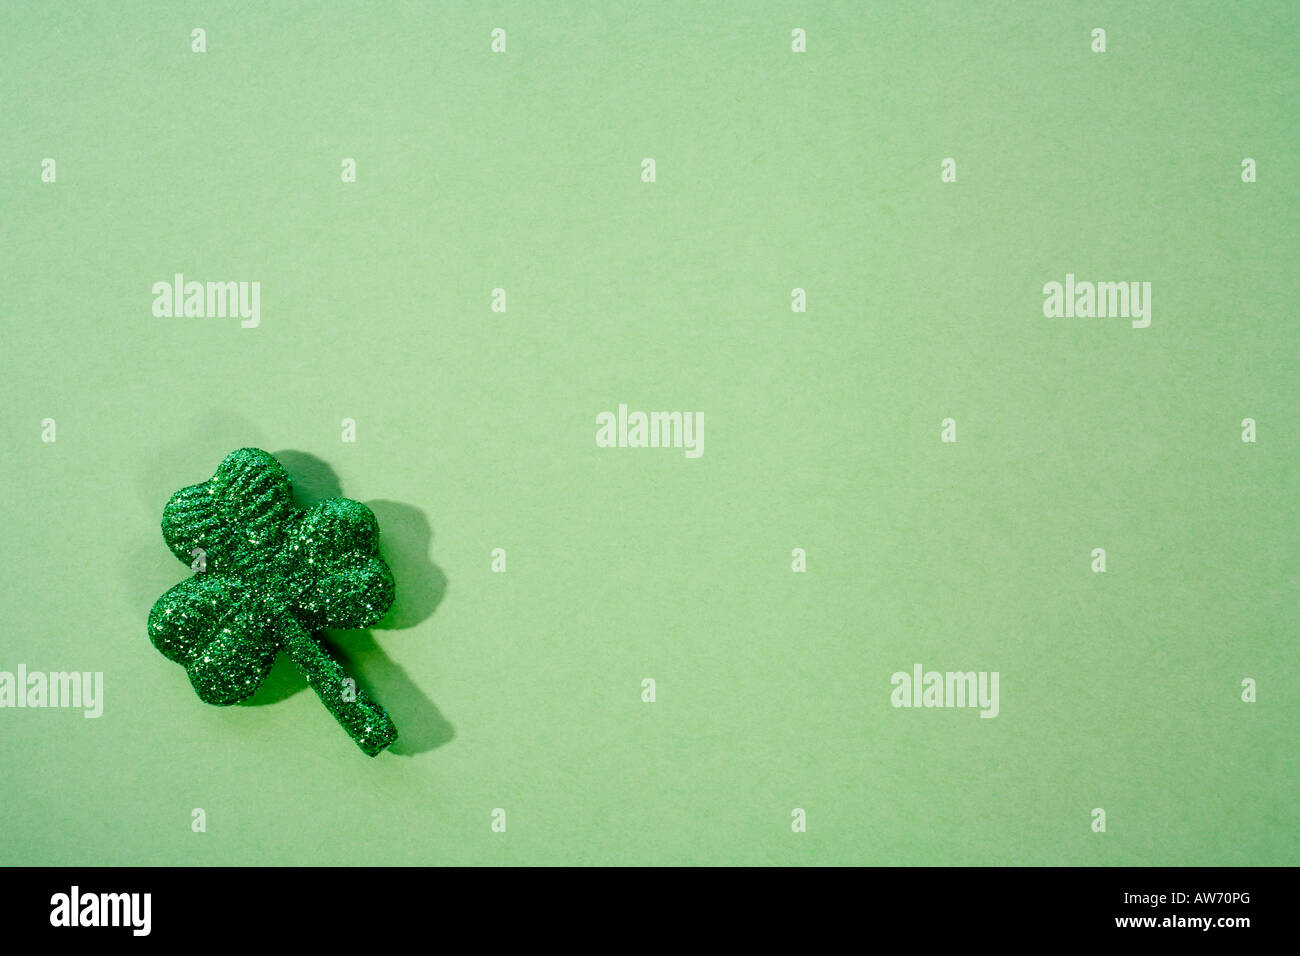 Shamrock Photo Stock